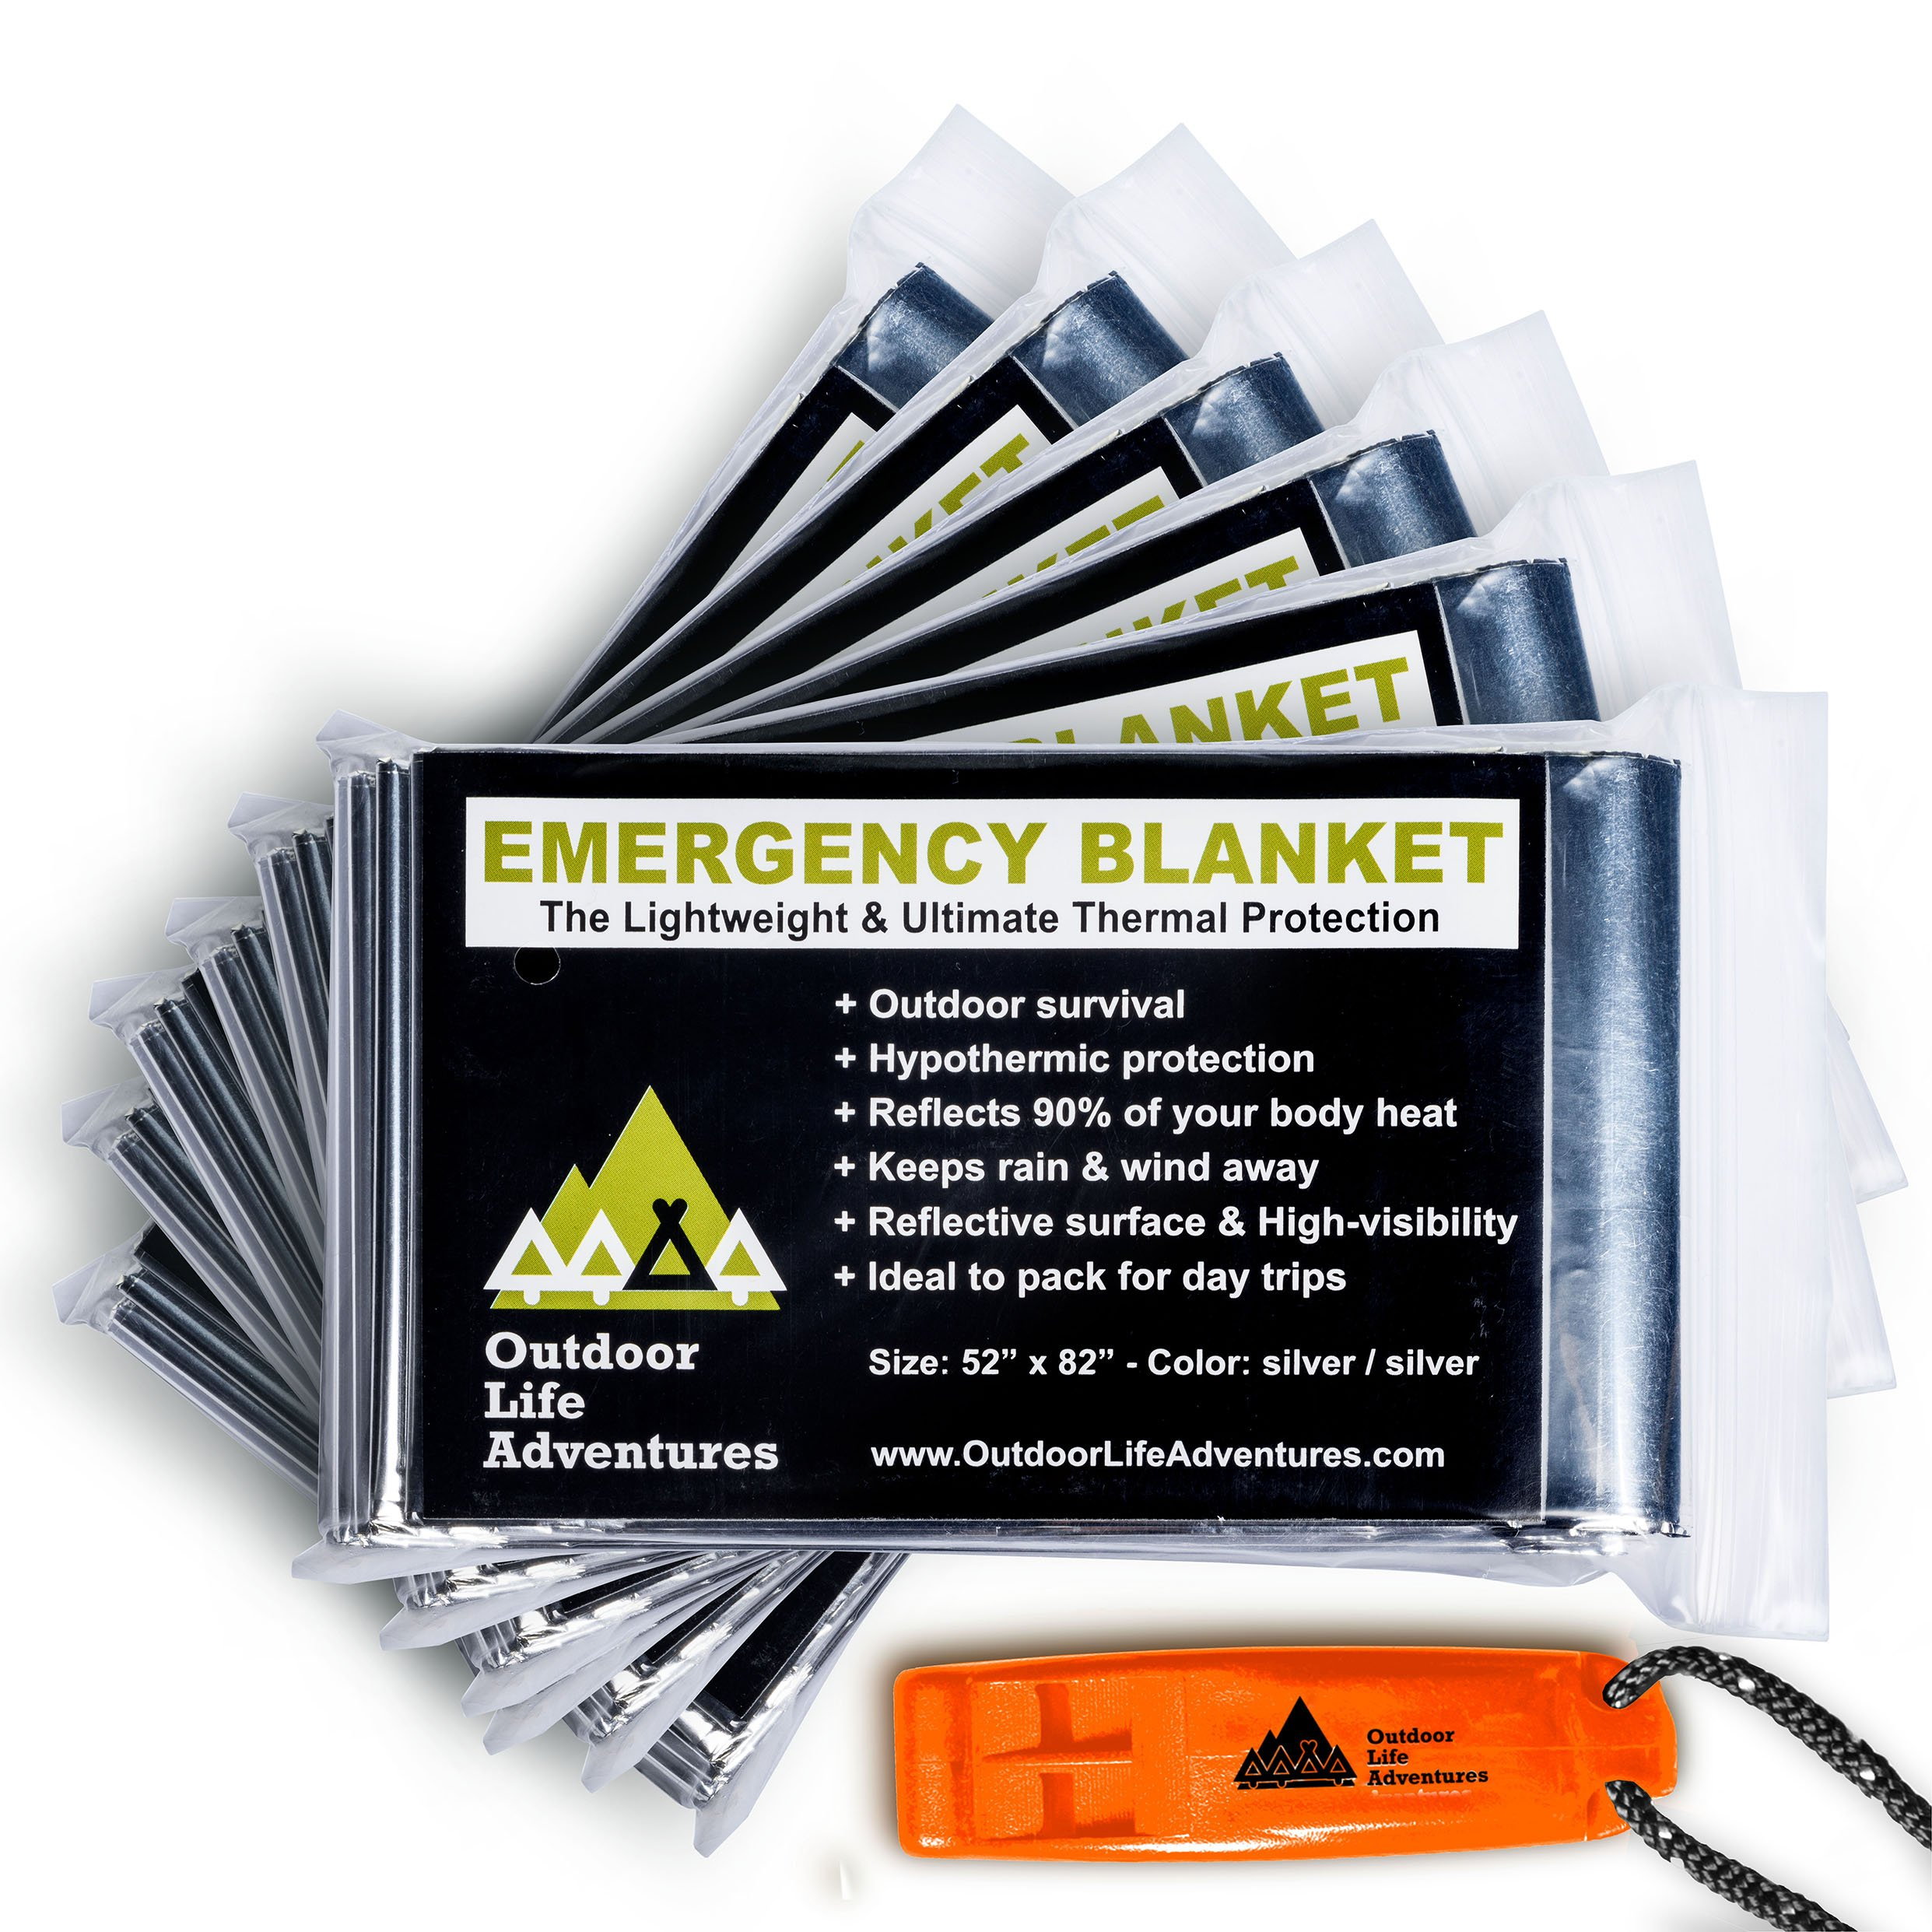 Versatile Emergency Blanket (6-Pack) – Essential Outdoor Survival Gear for Camping and Hiking – Made From Strong Mylar Foil for All Weather Protection – Includes Bonus Emergency Whistle and User Guide